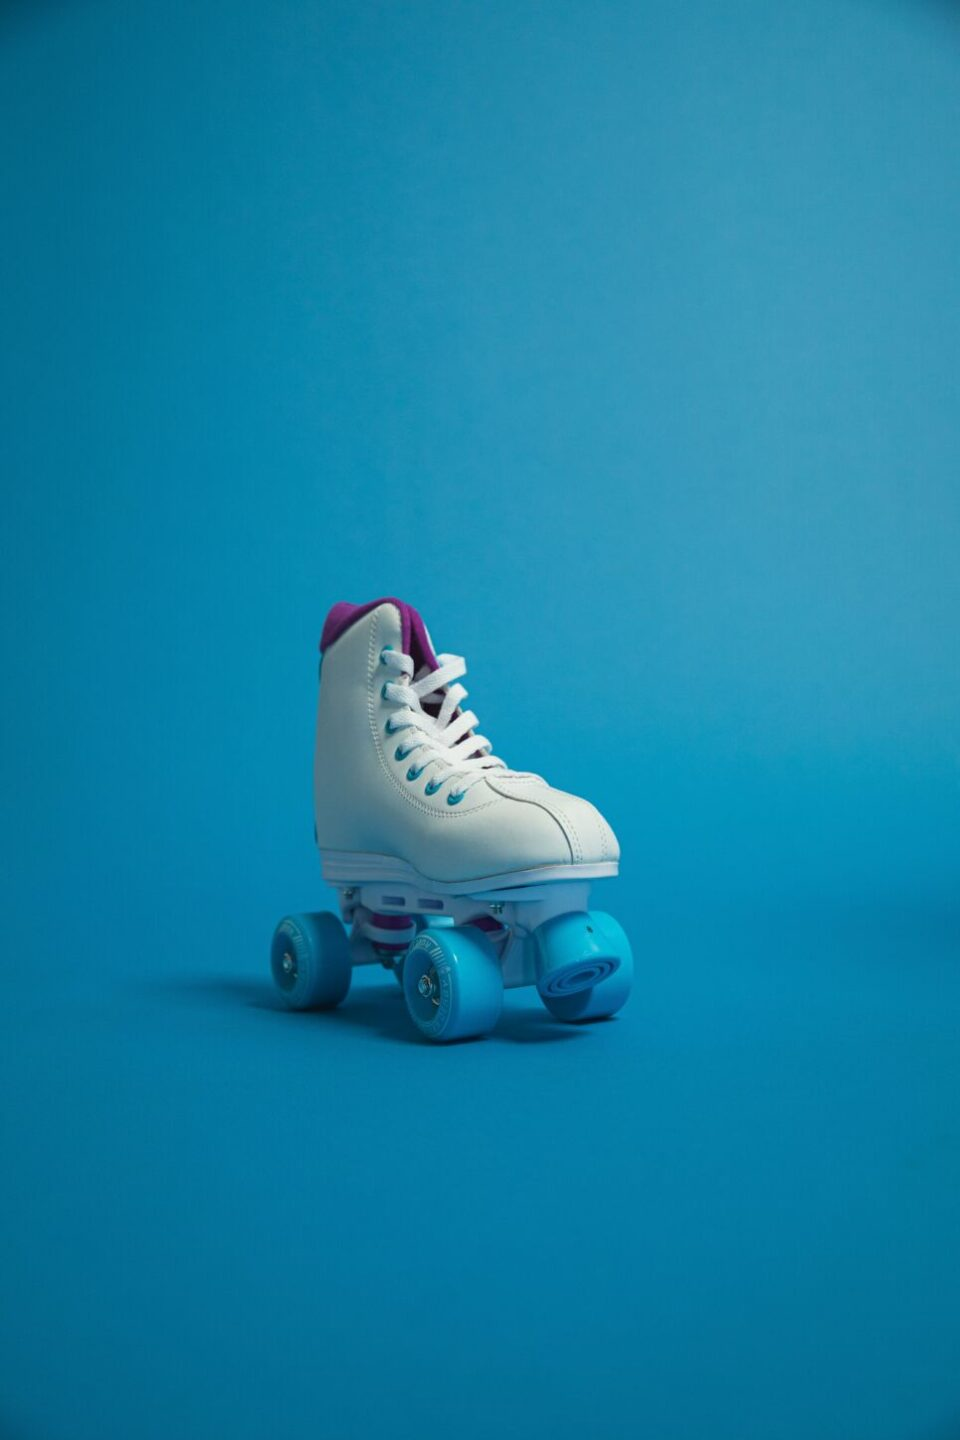 unpaired white and blue roller skate